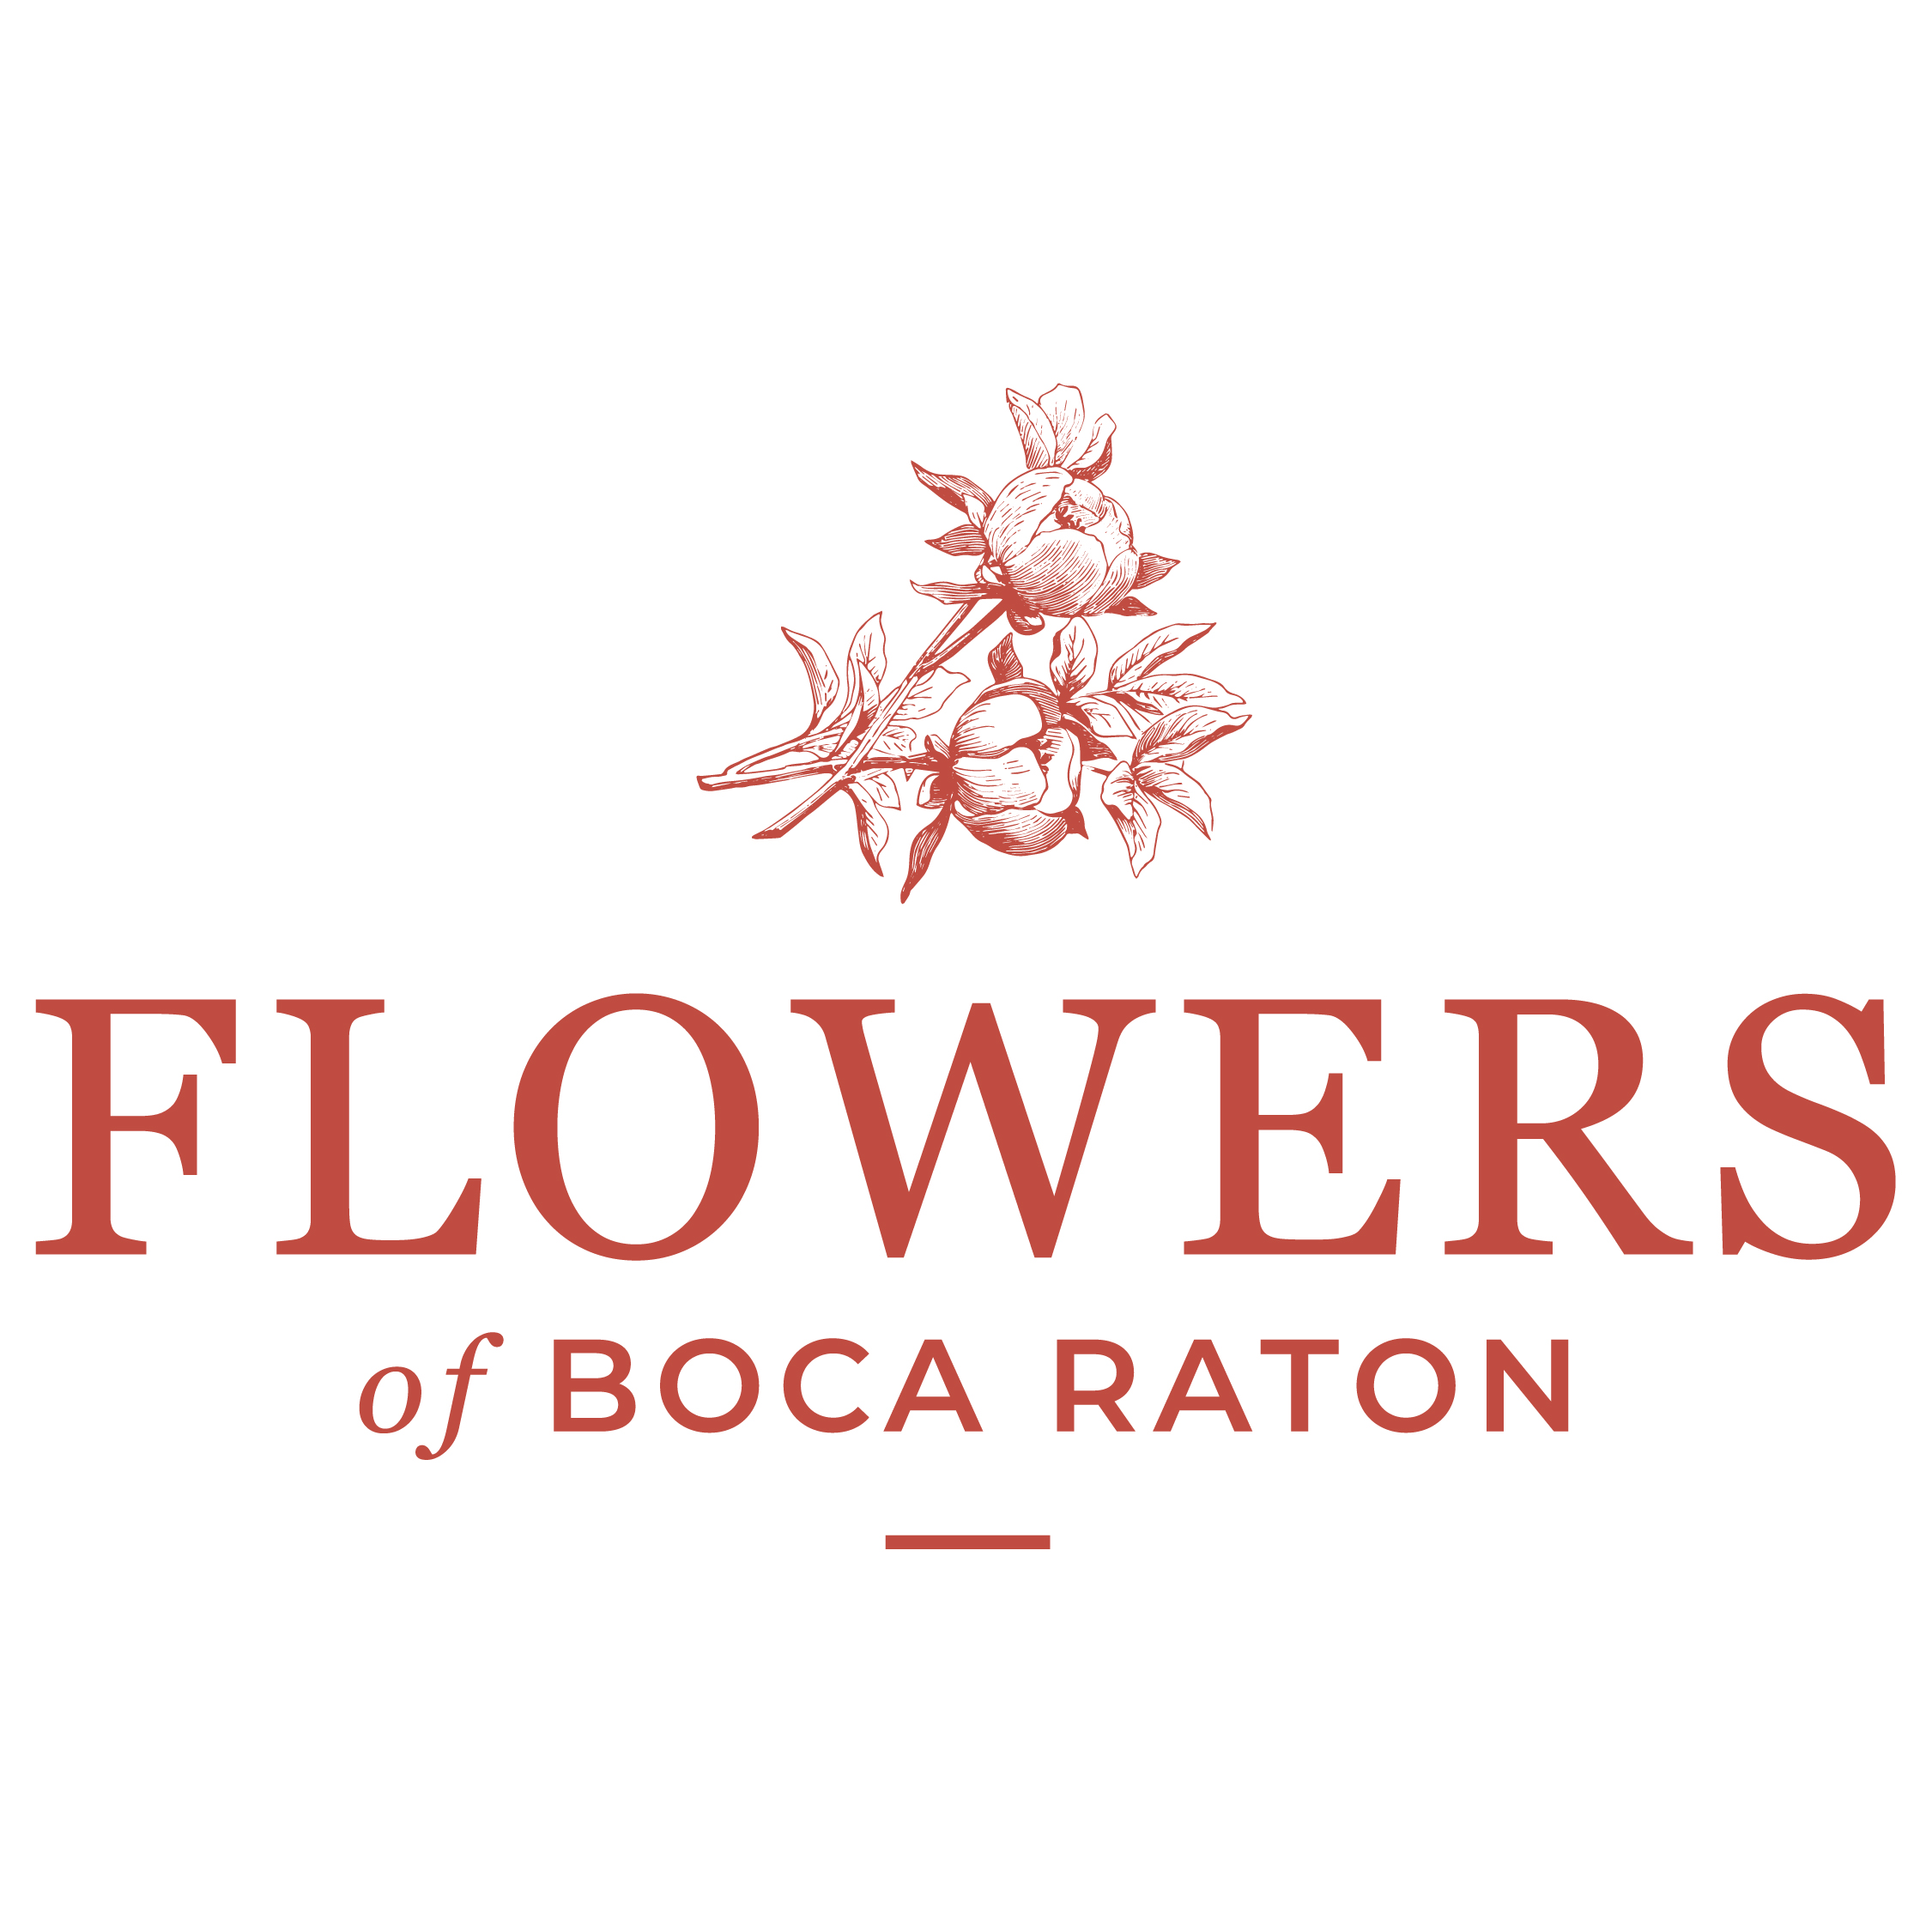 Kimberly S Flowers Of Boca Raton To Become Flowers Of Boca